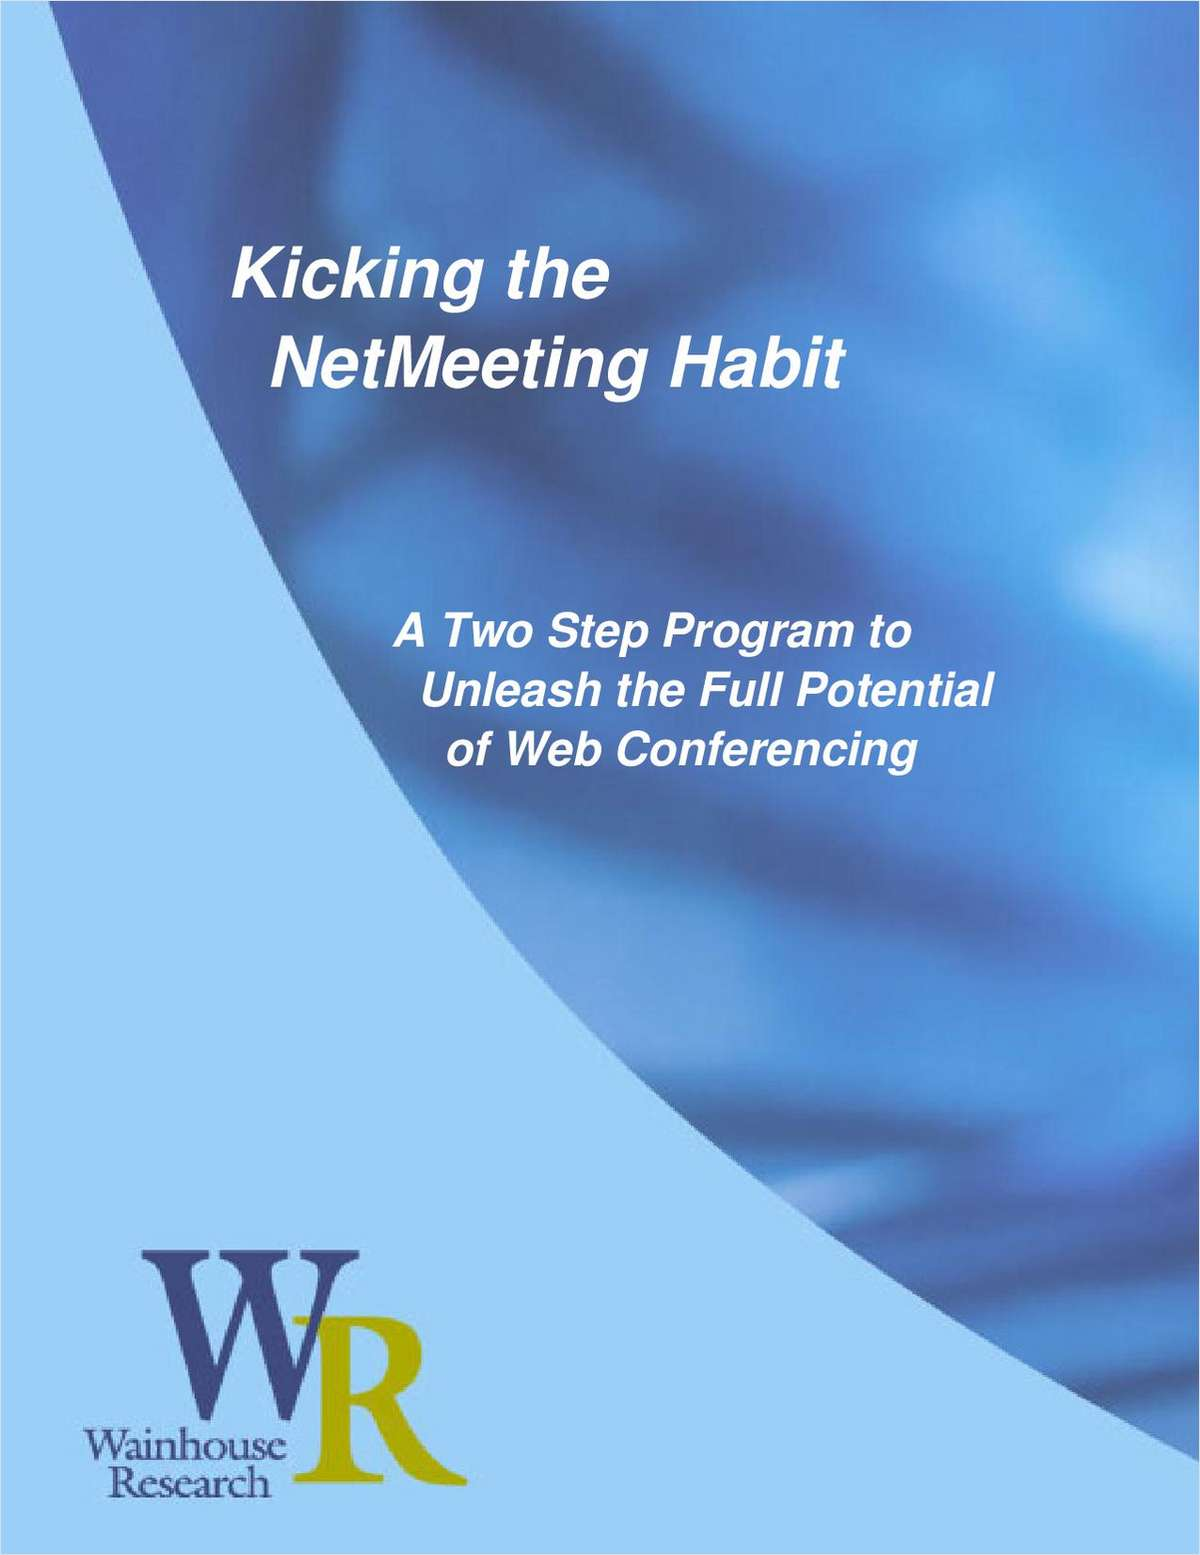 Kicking the NetMeeting Habit:  A Two-Step Program to Unleash the Full Potential of Web Conferencing